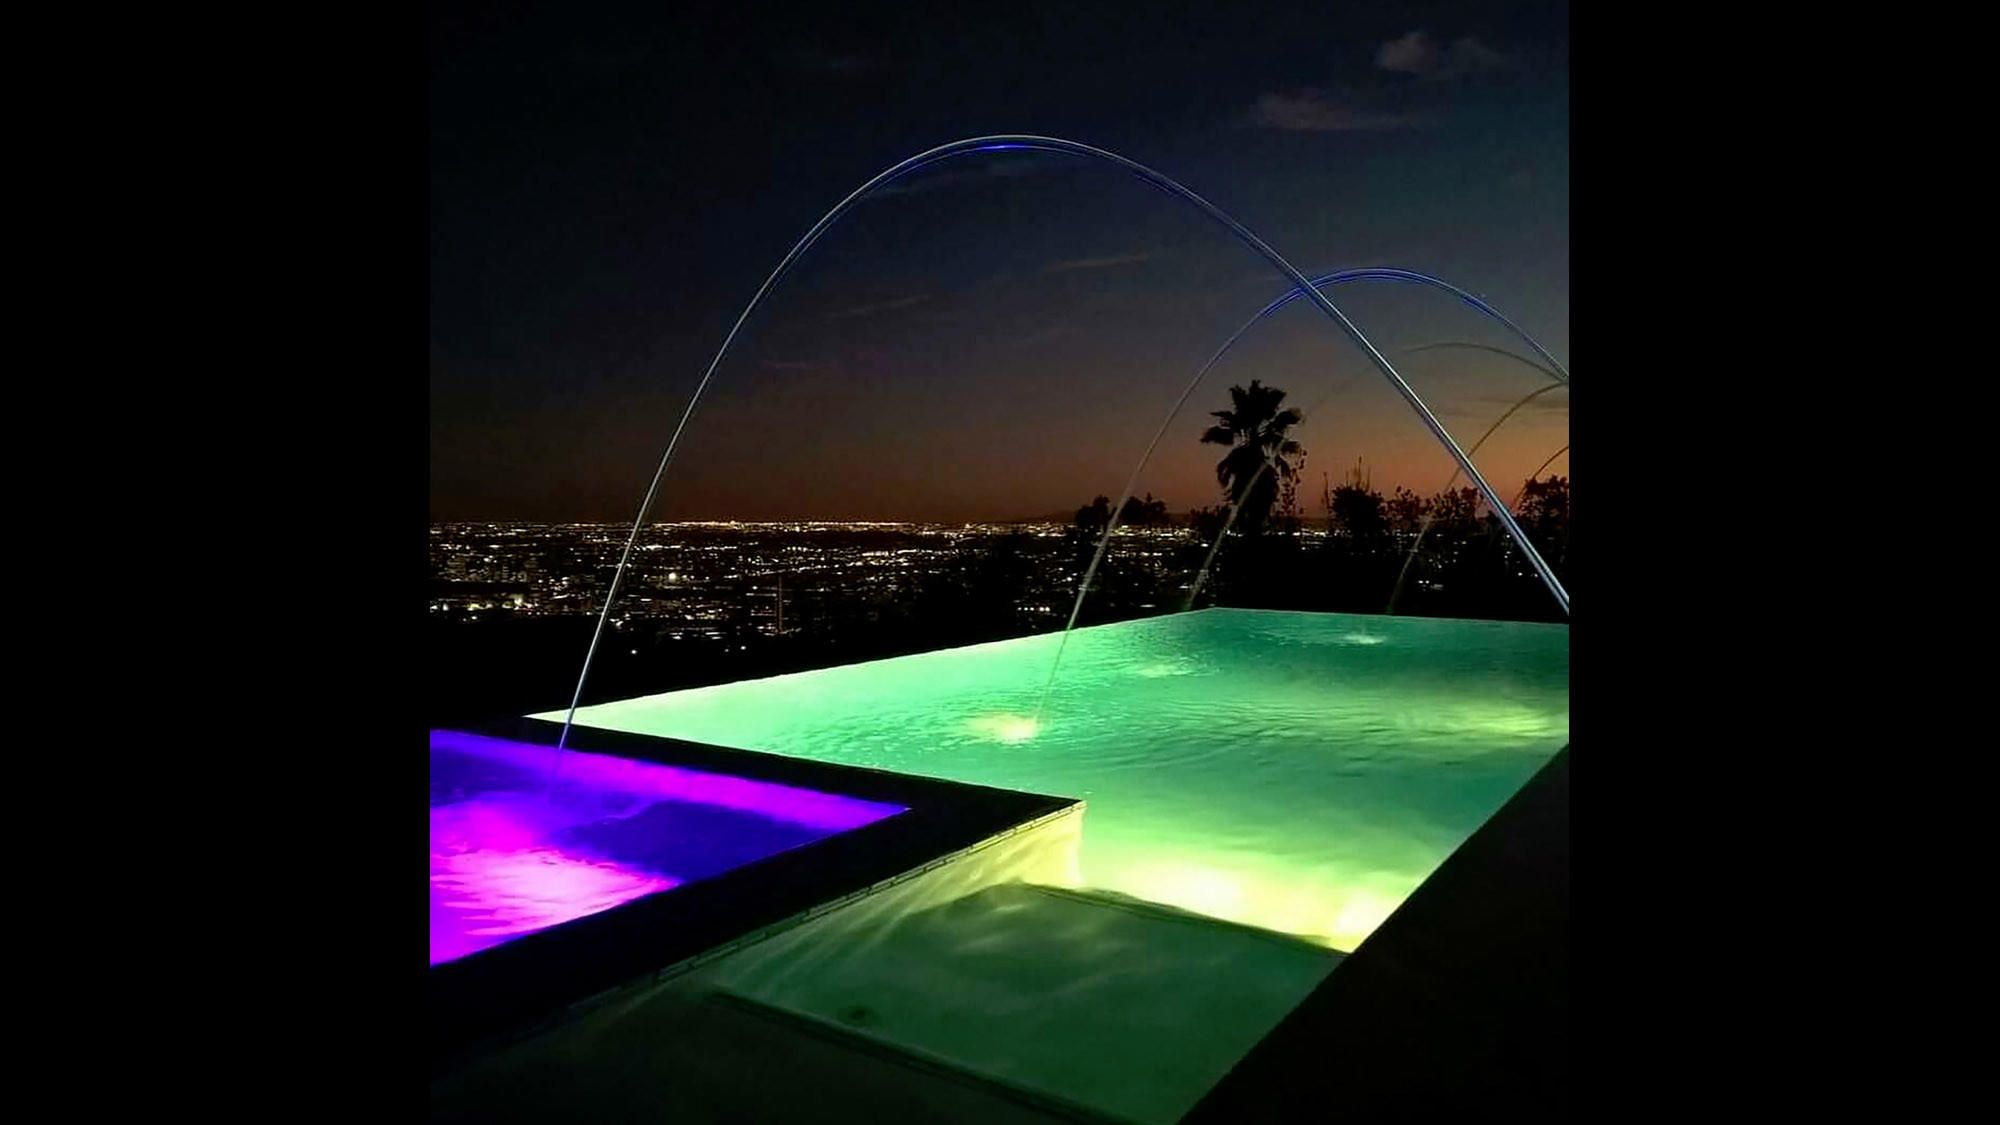 This infinity-edge pool by Poseidon Pools features lighted laminar deck jets, a swim jet system, color-changing lights, underwater speakers, an automatic pool cover and remote-control technology by OmniLogic.